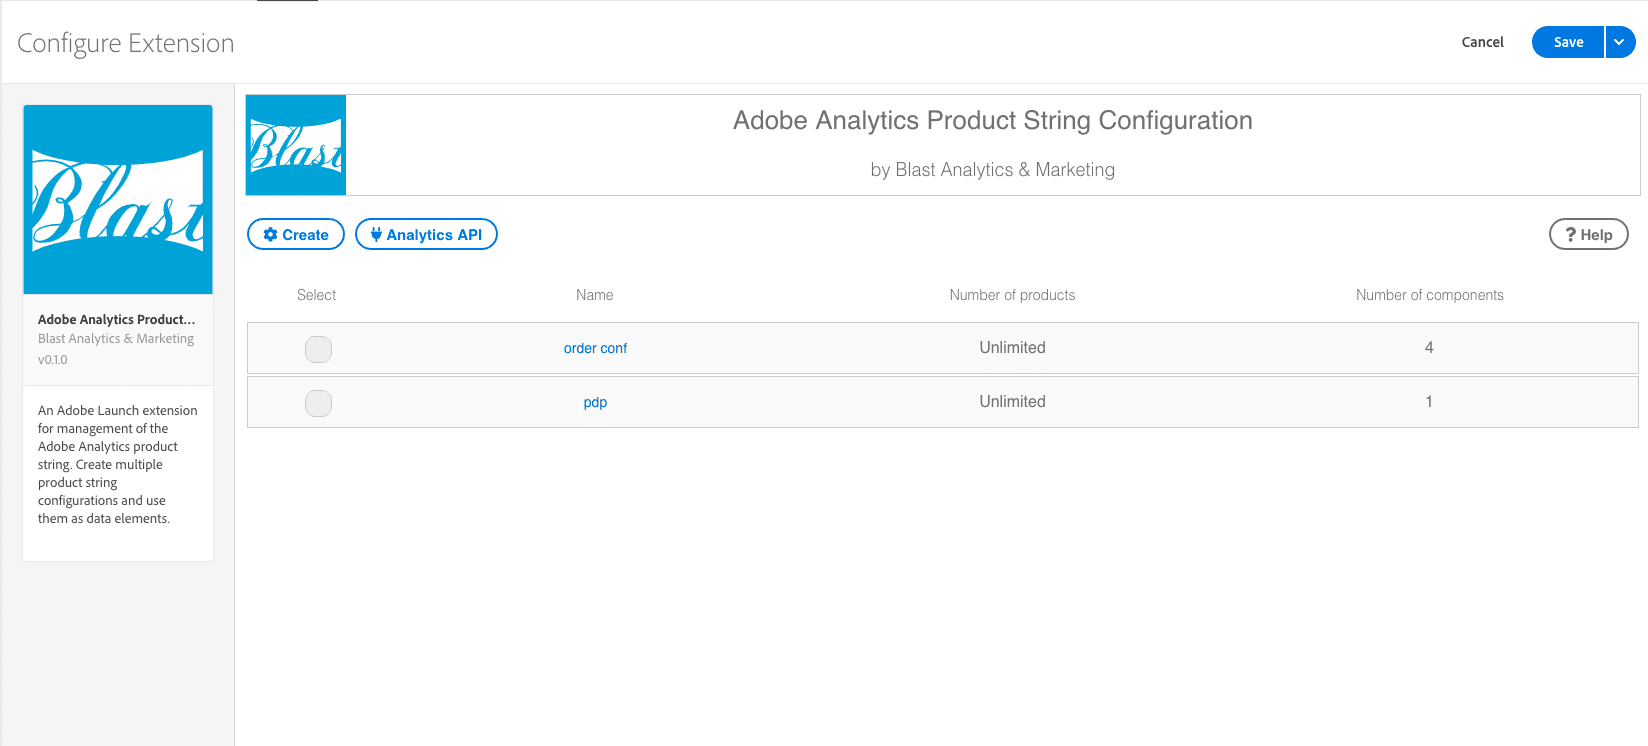 adobe analytics product string configuration